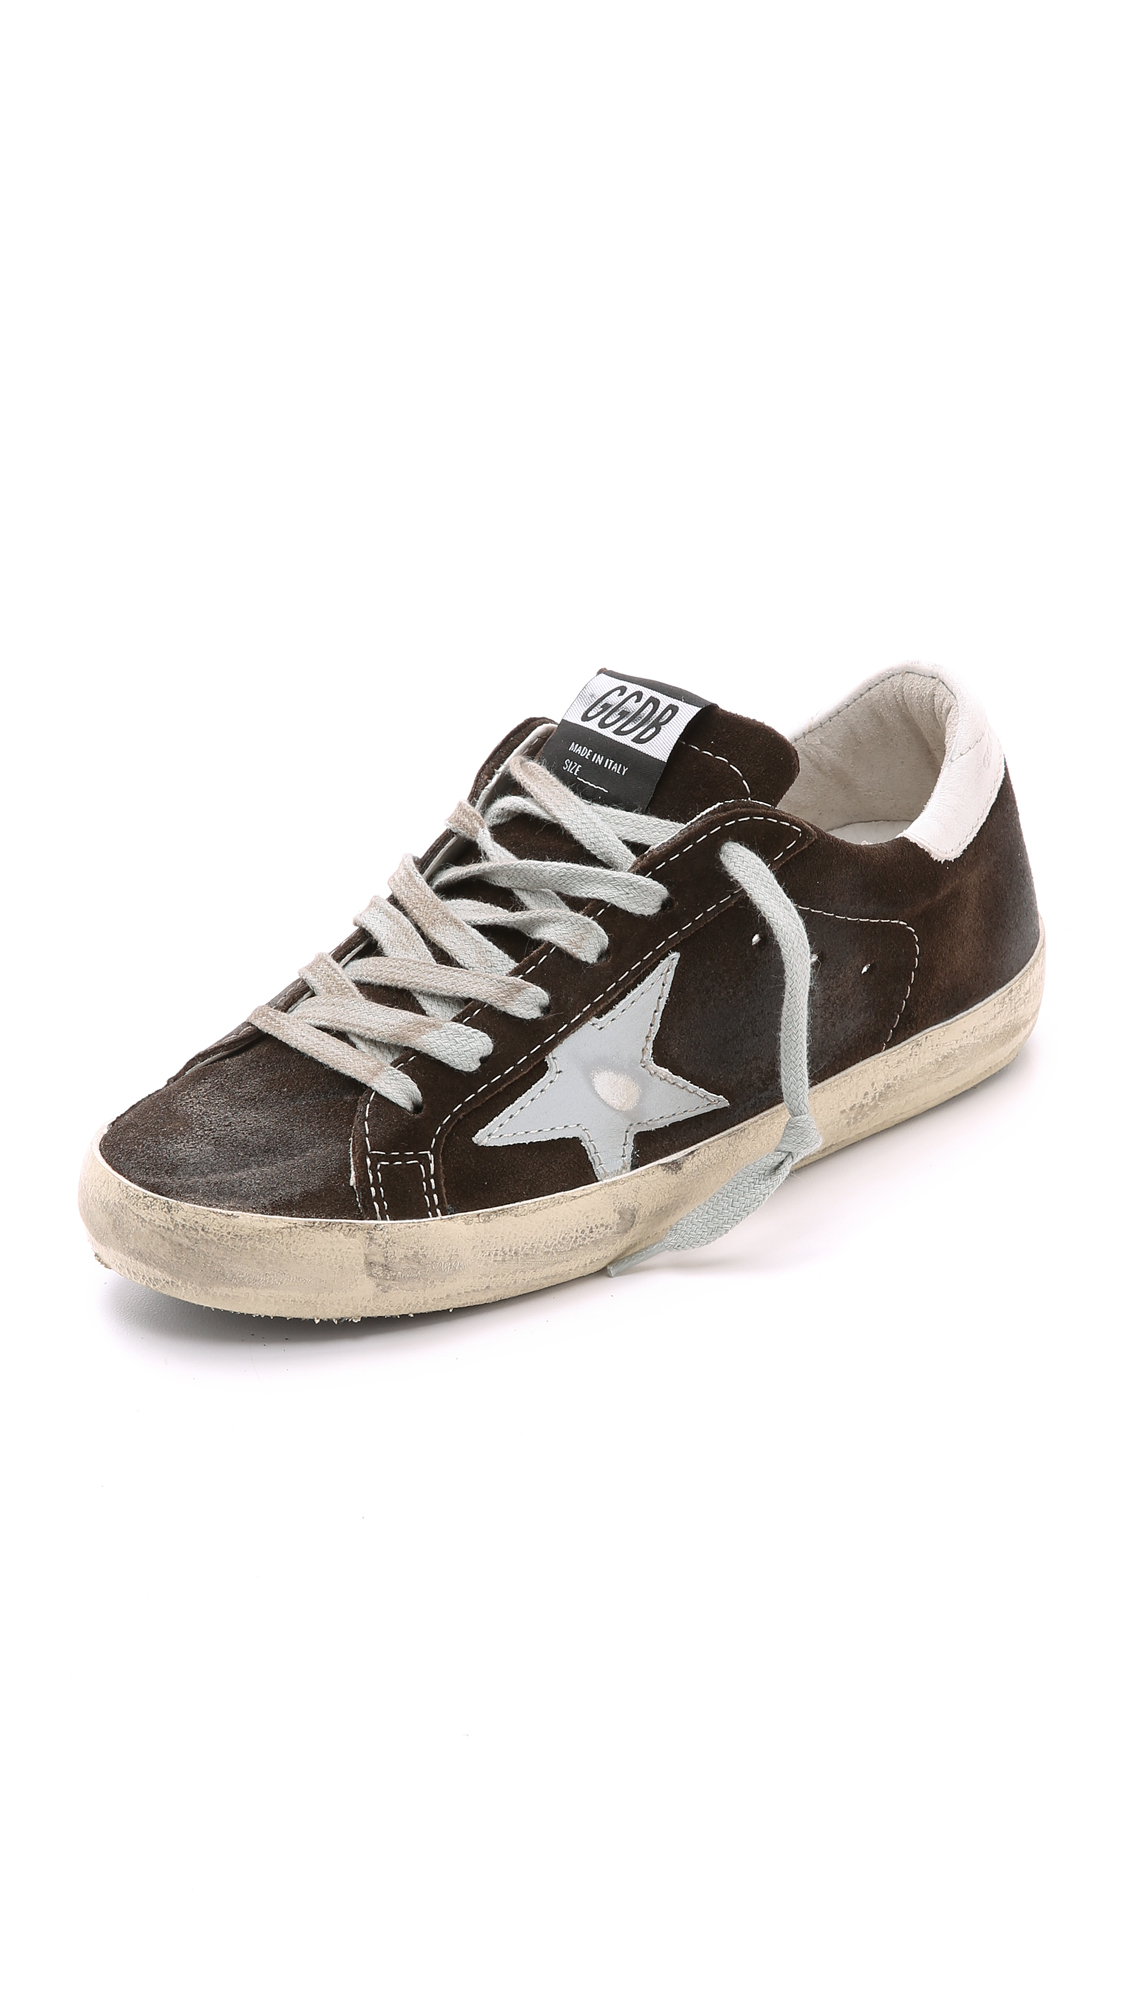 Golden Goose Superstar Sneakers In Brown